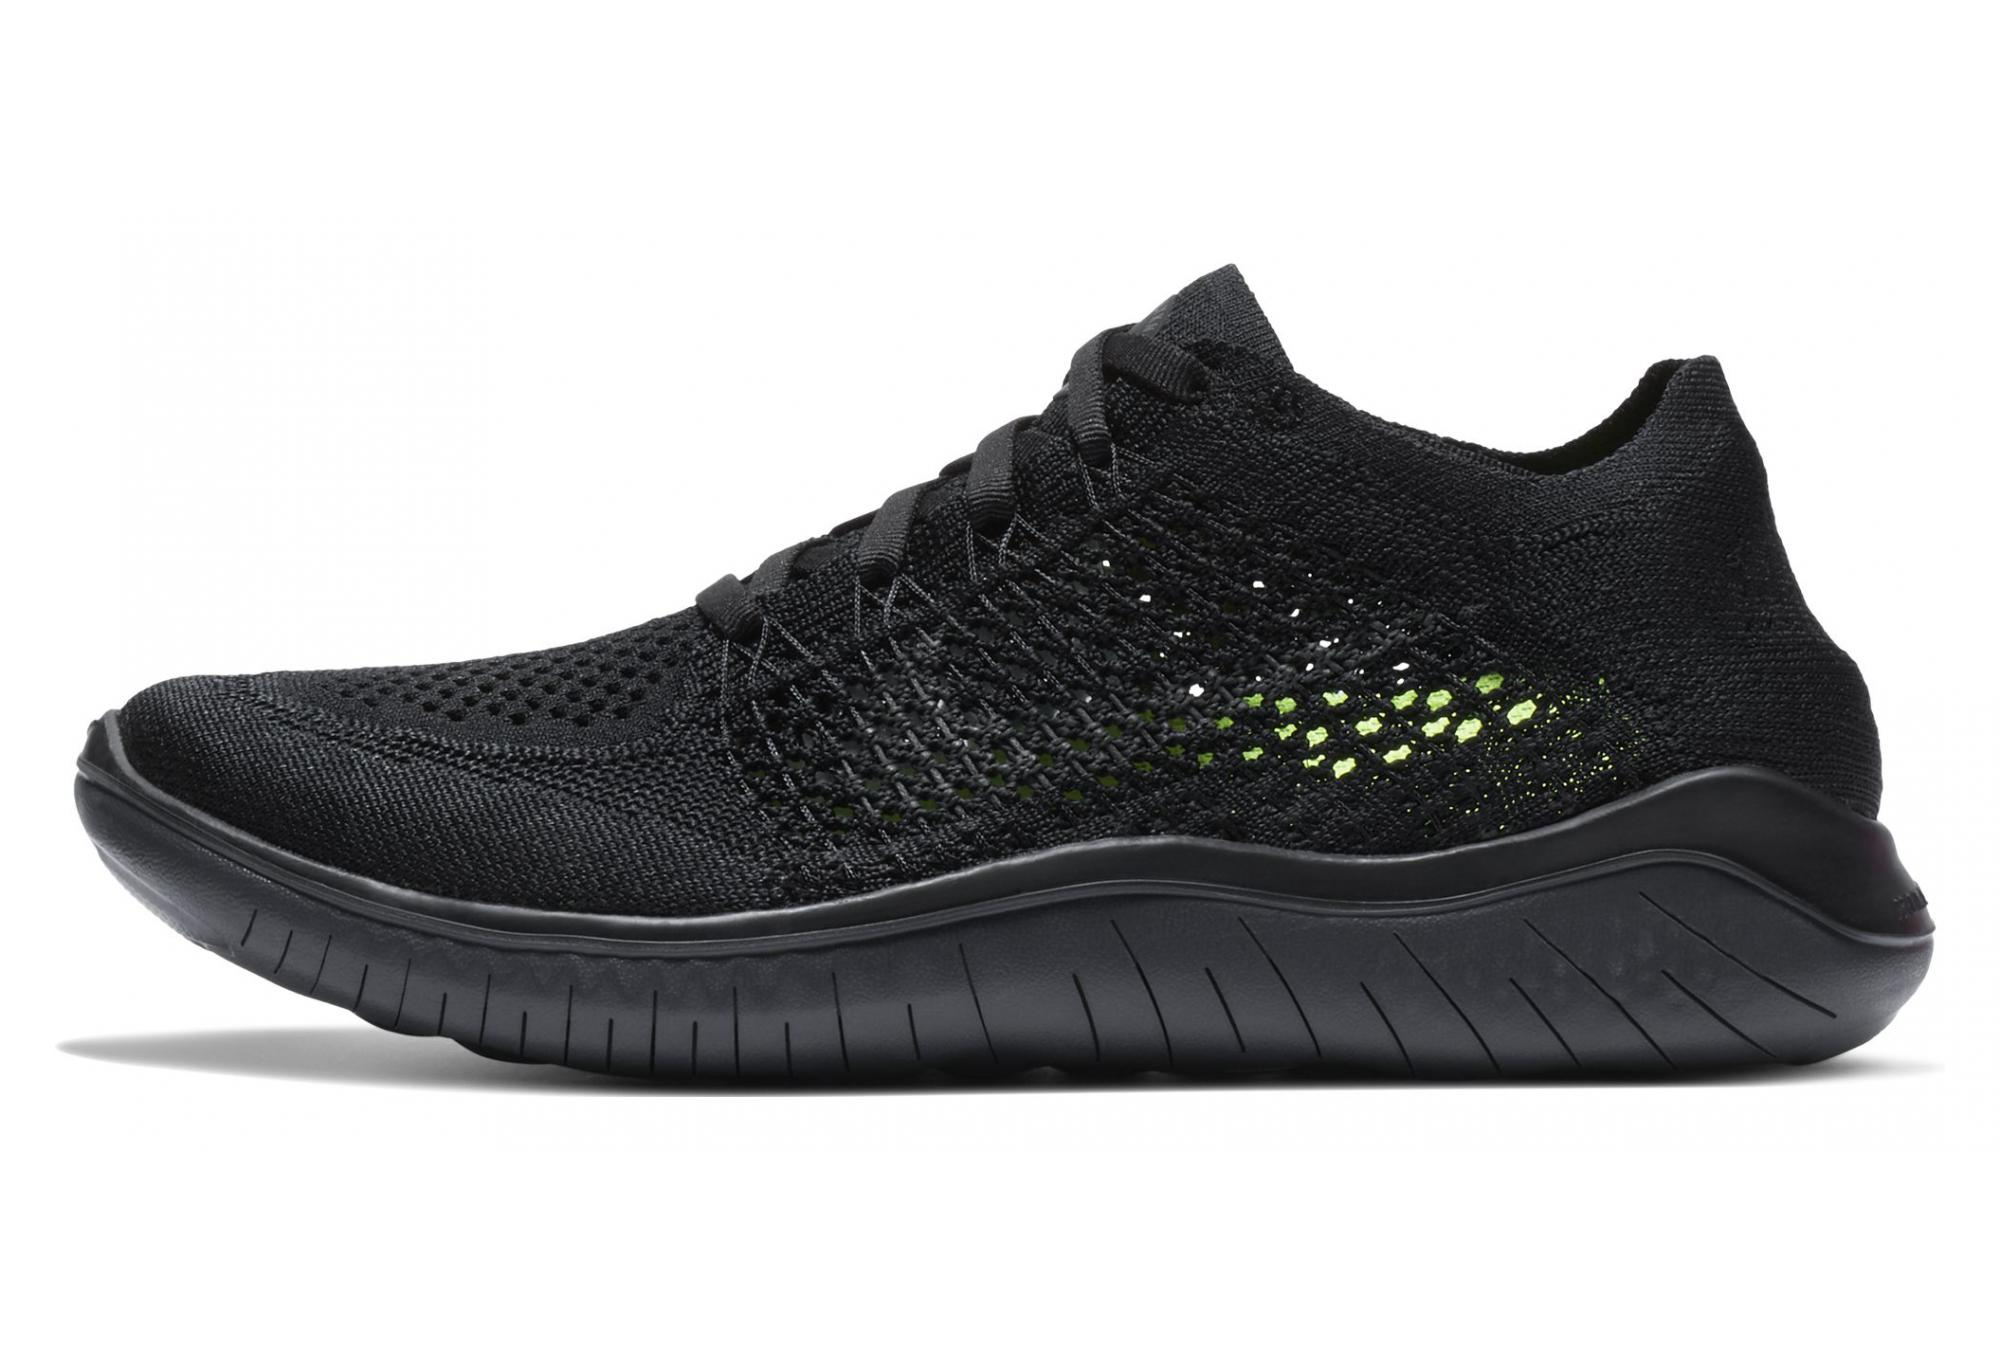 Nike Shoes Free RN Flyknit 2018 Negro Mujeres